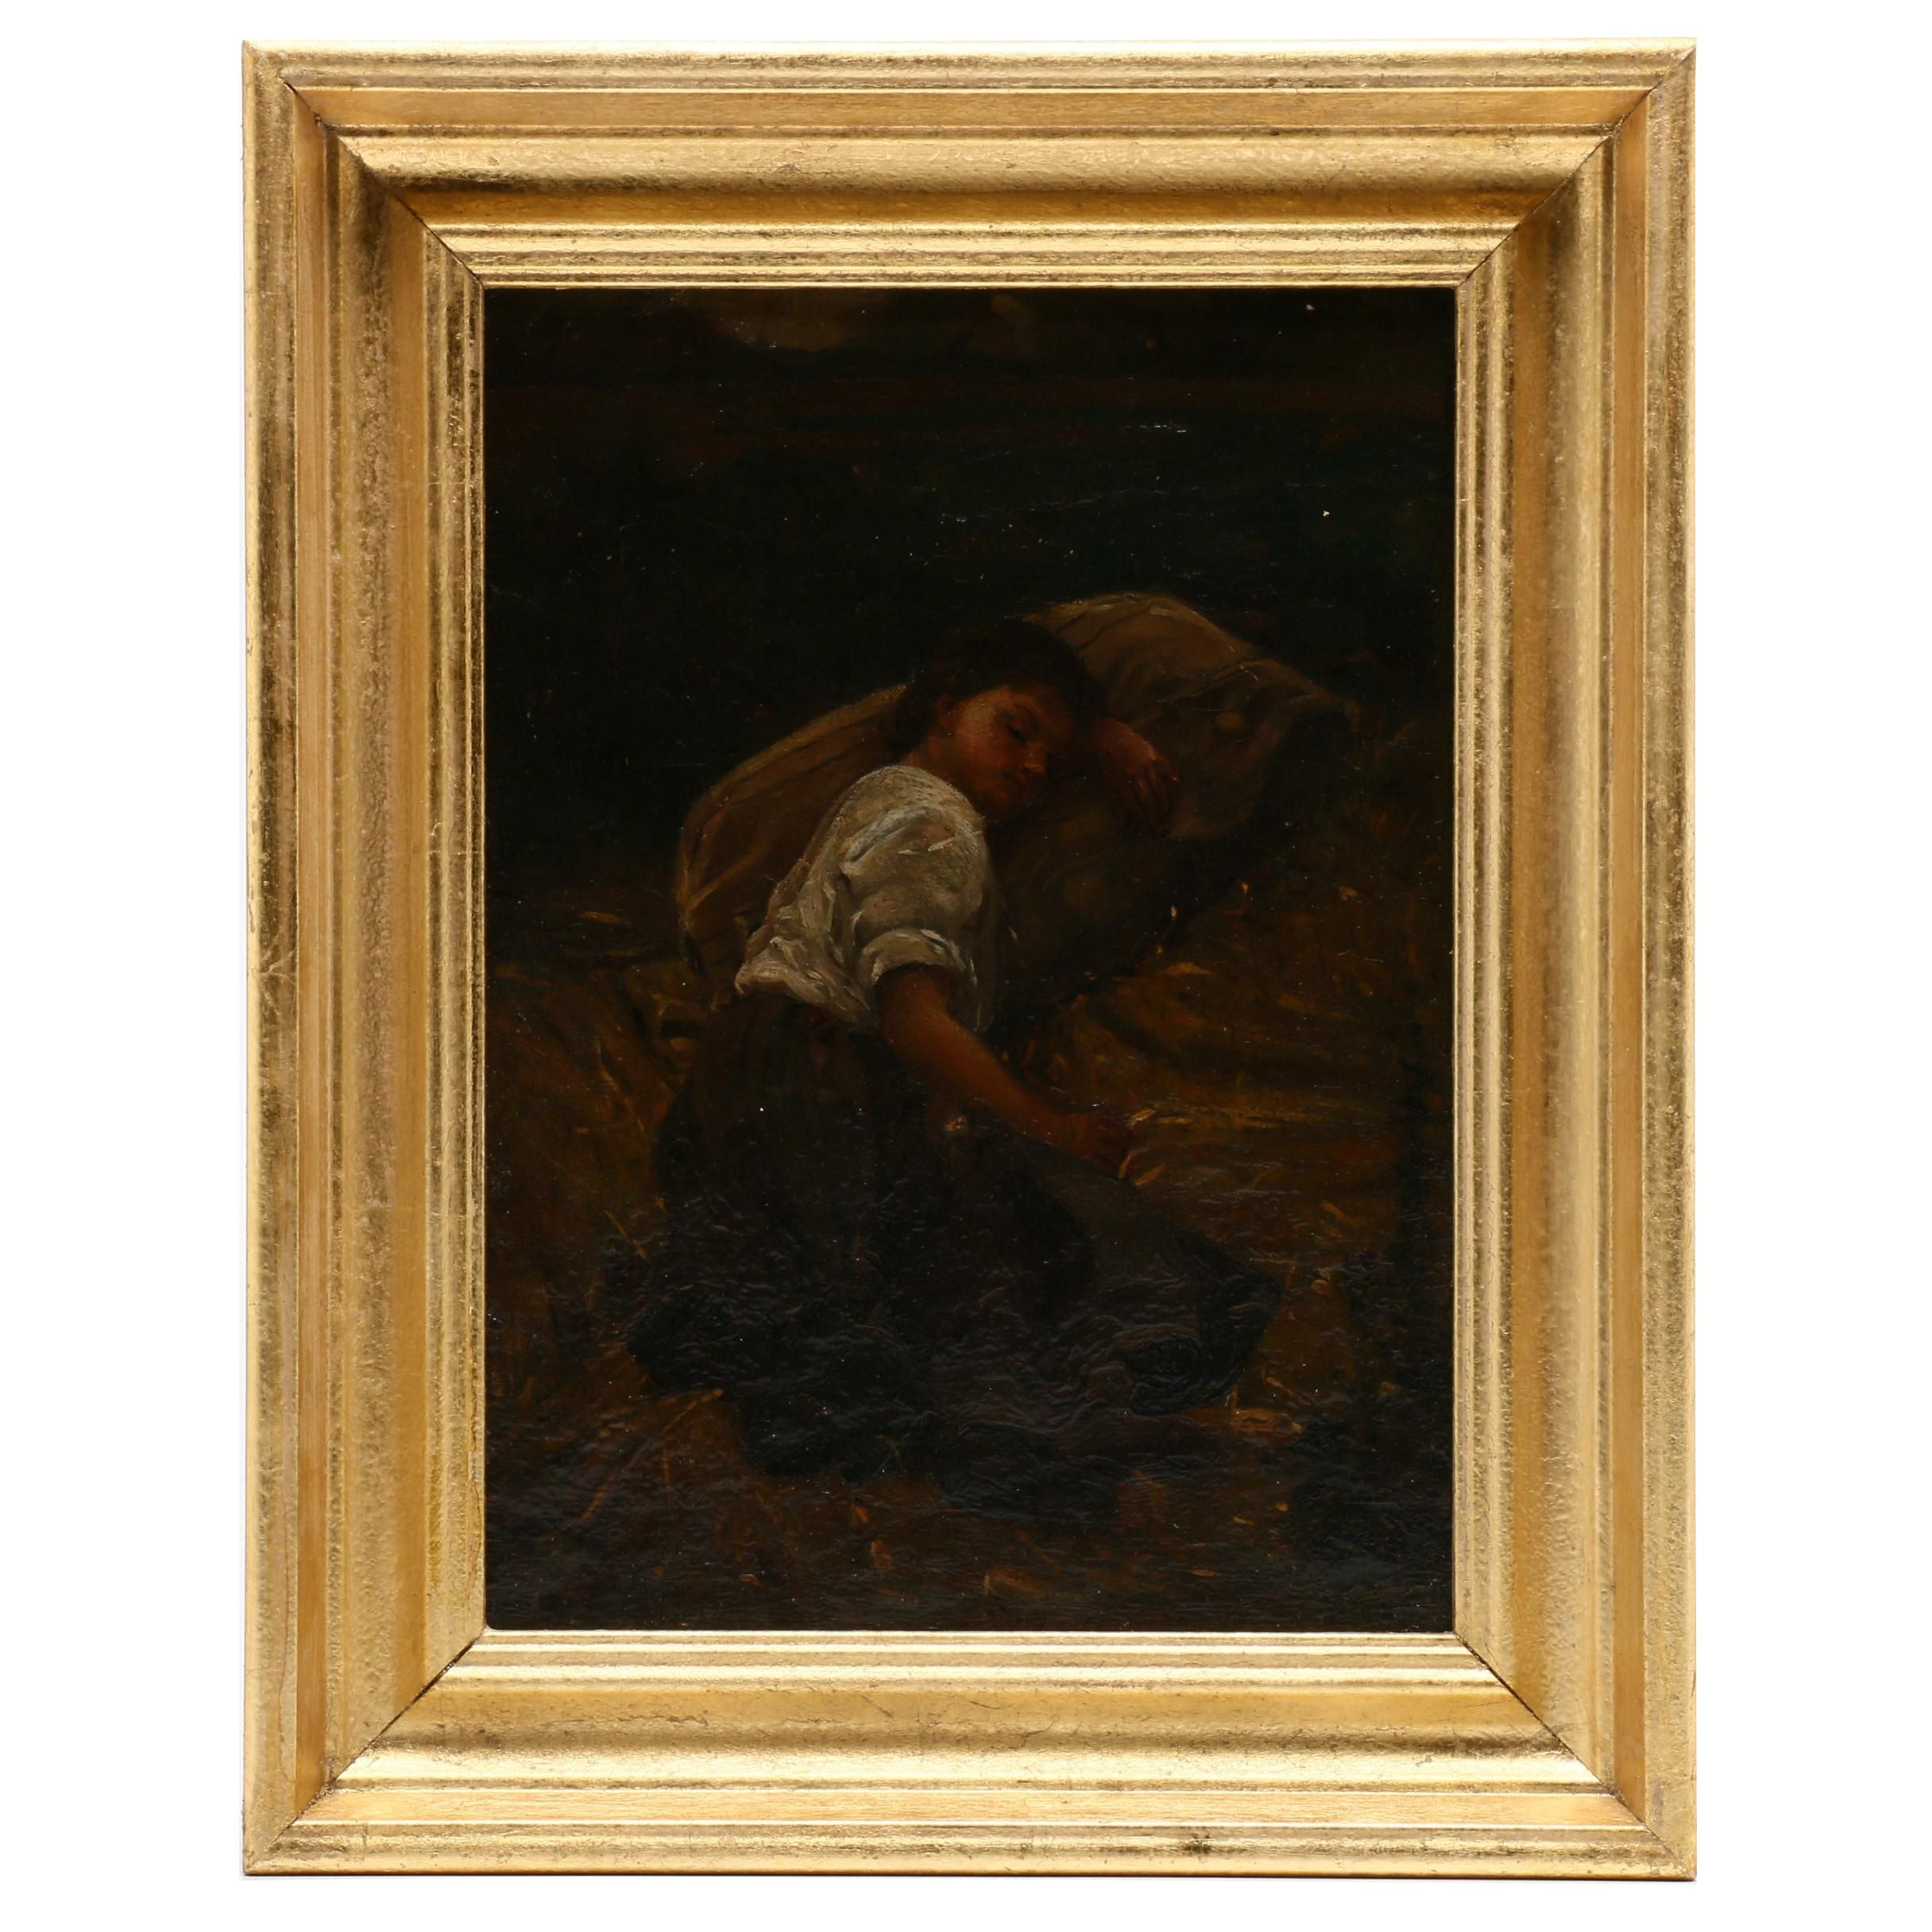 Oil Painting of Child Sleeping in Hay